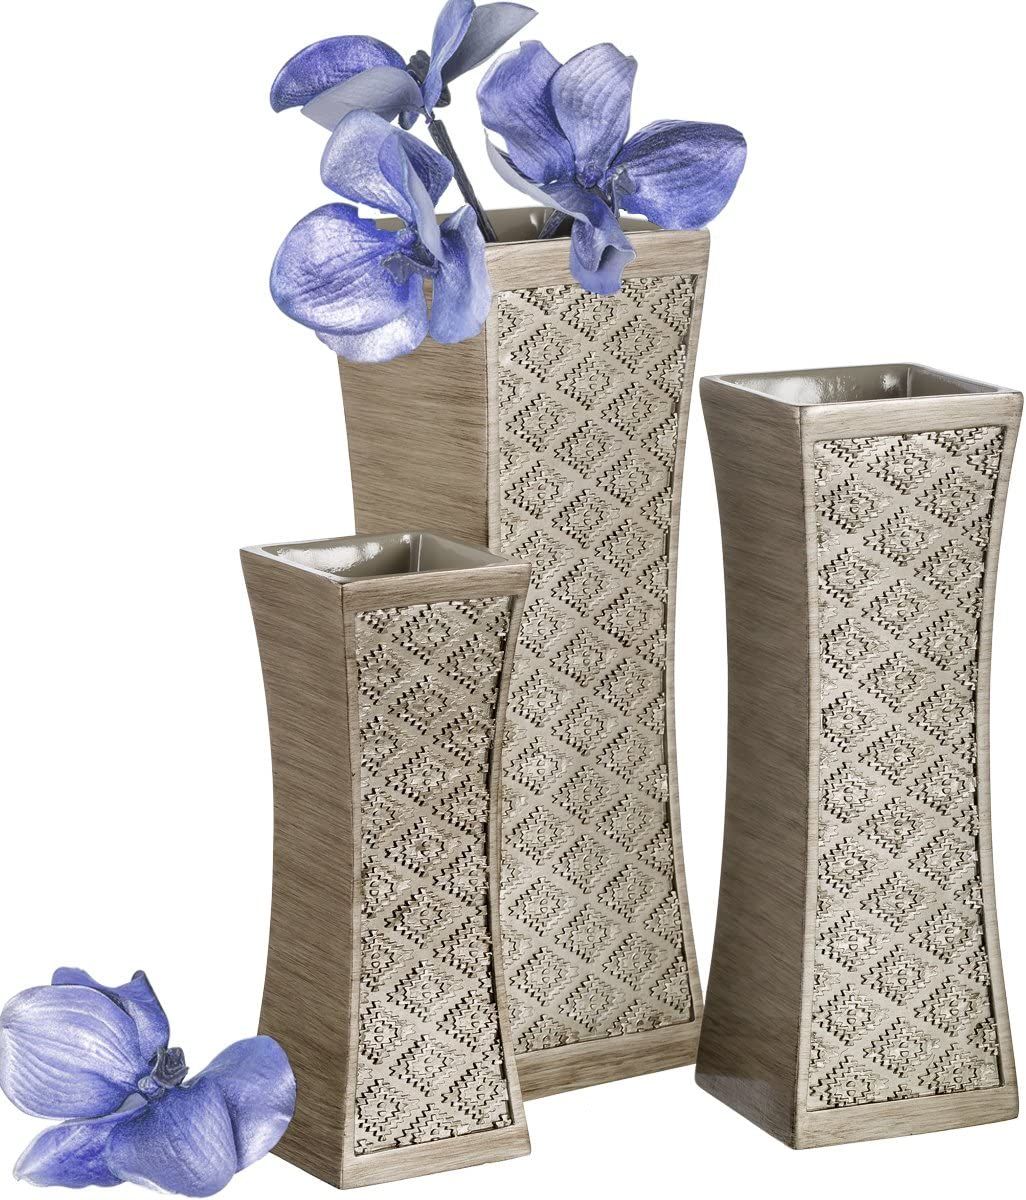 Dublin Flower Vase Set of 3 – Centerpieces for Dining Room Table, Decorative Vases Home Decor Accents for Living Room, Bedroom, Kitchen More Packaged in Gift Box Brushed Silver